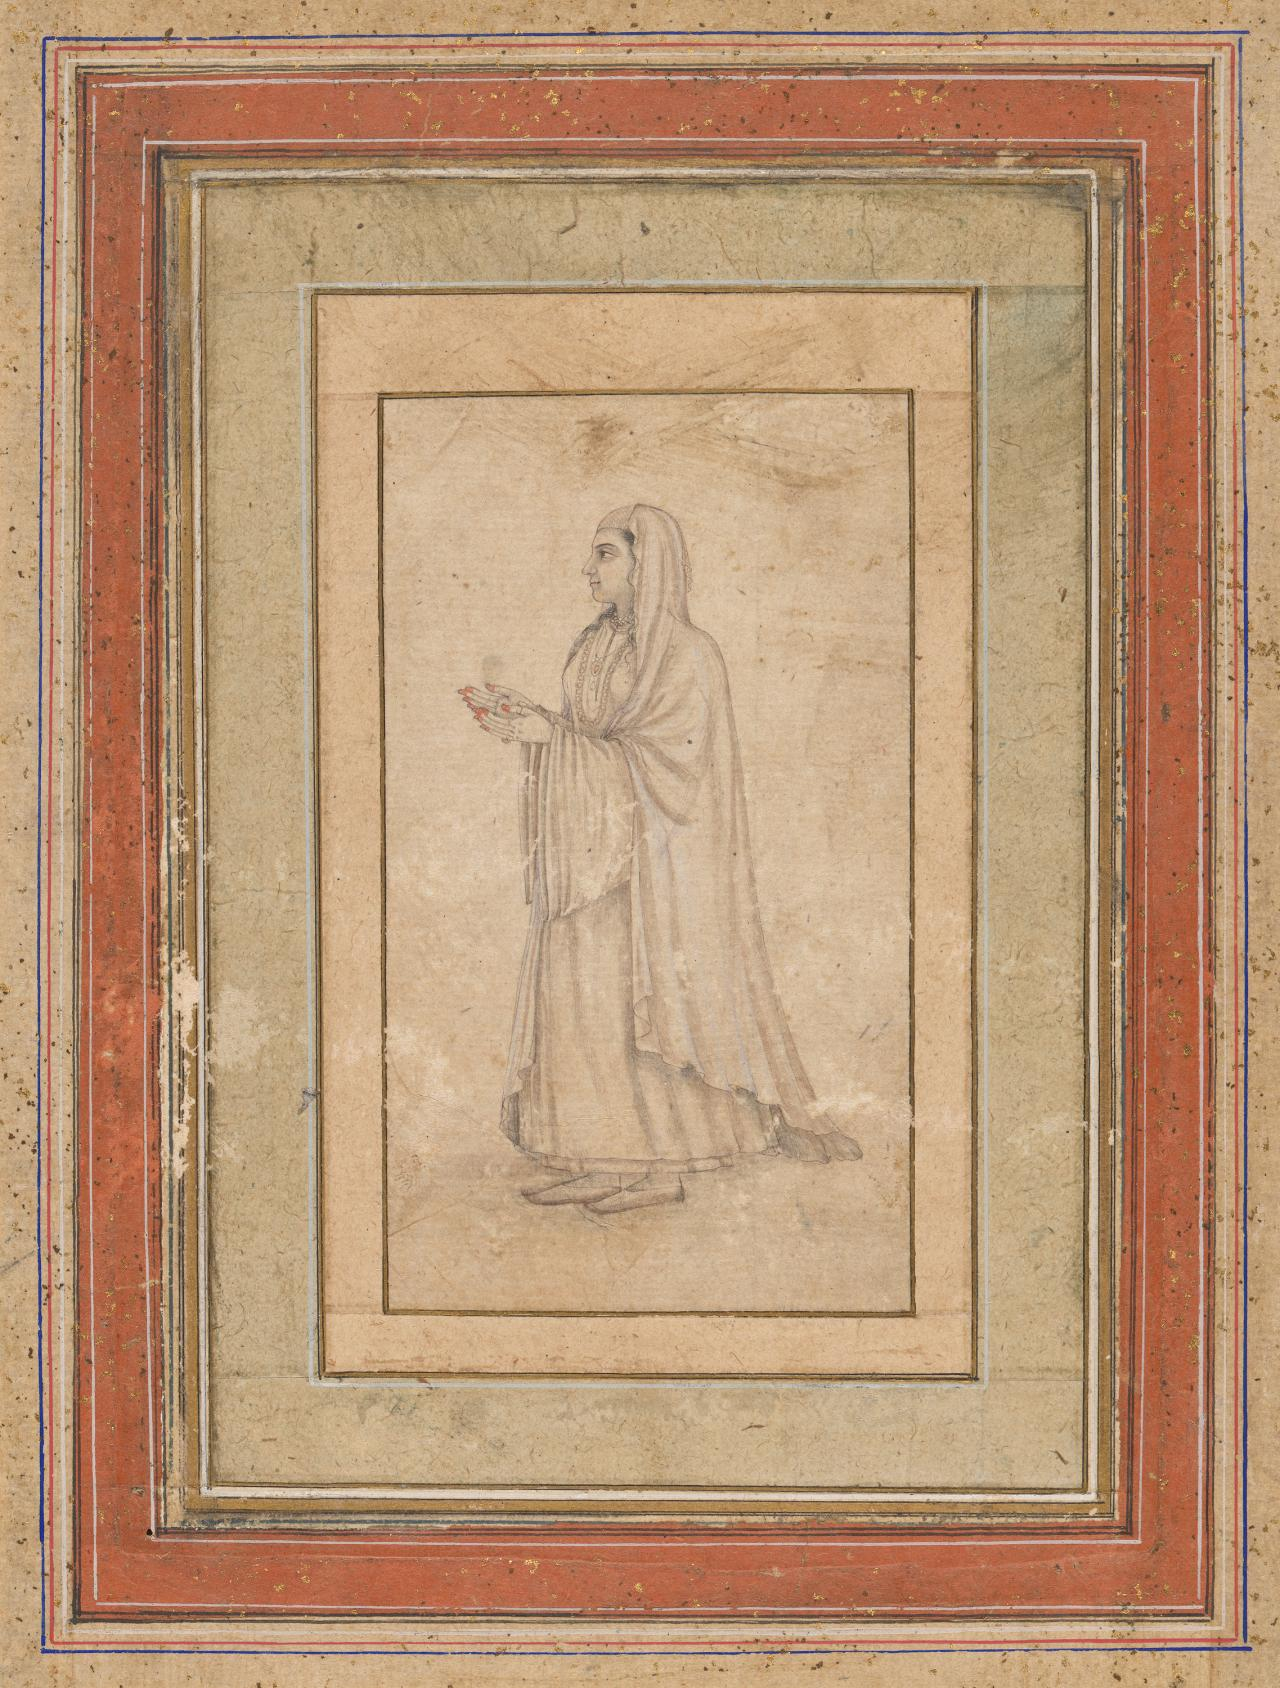 Standing figure of a woman